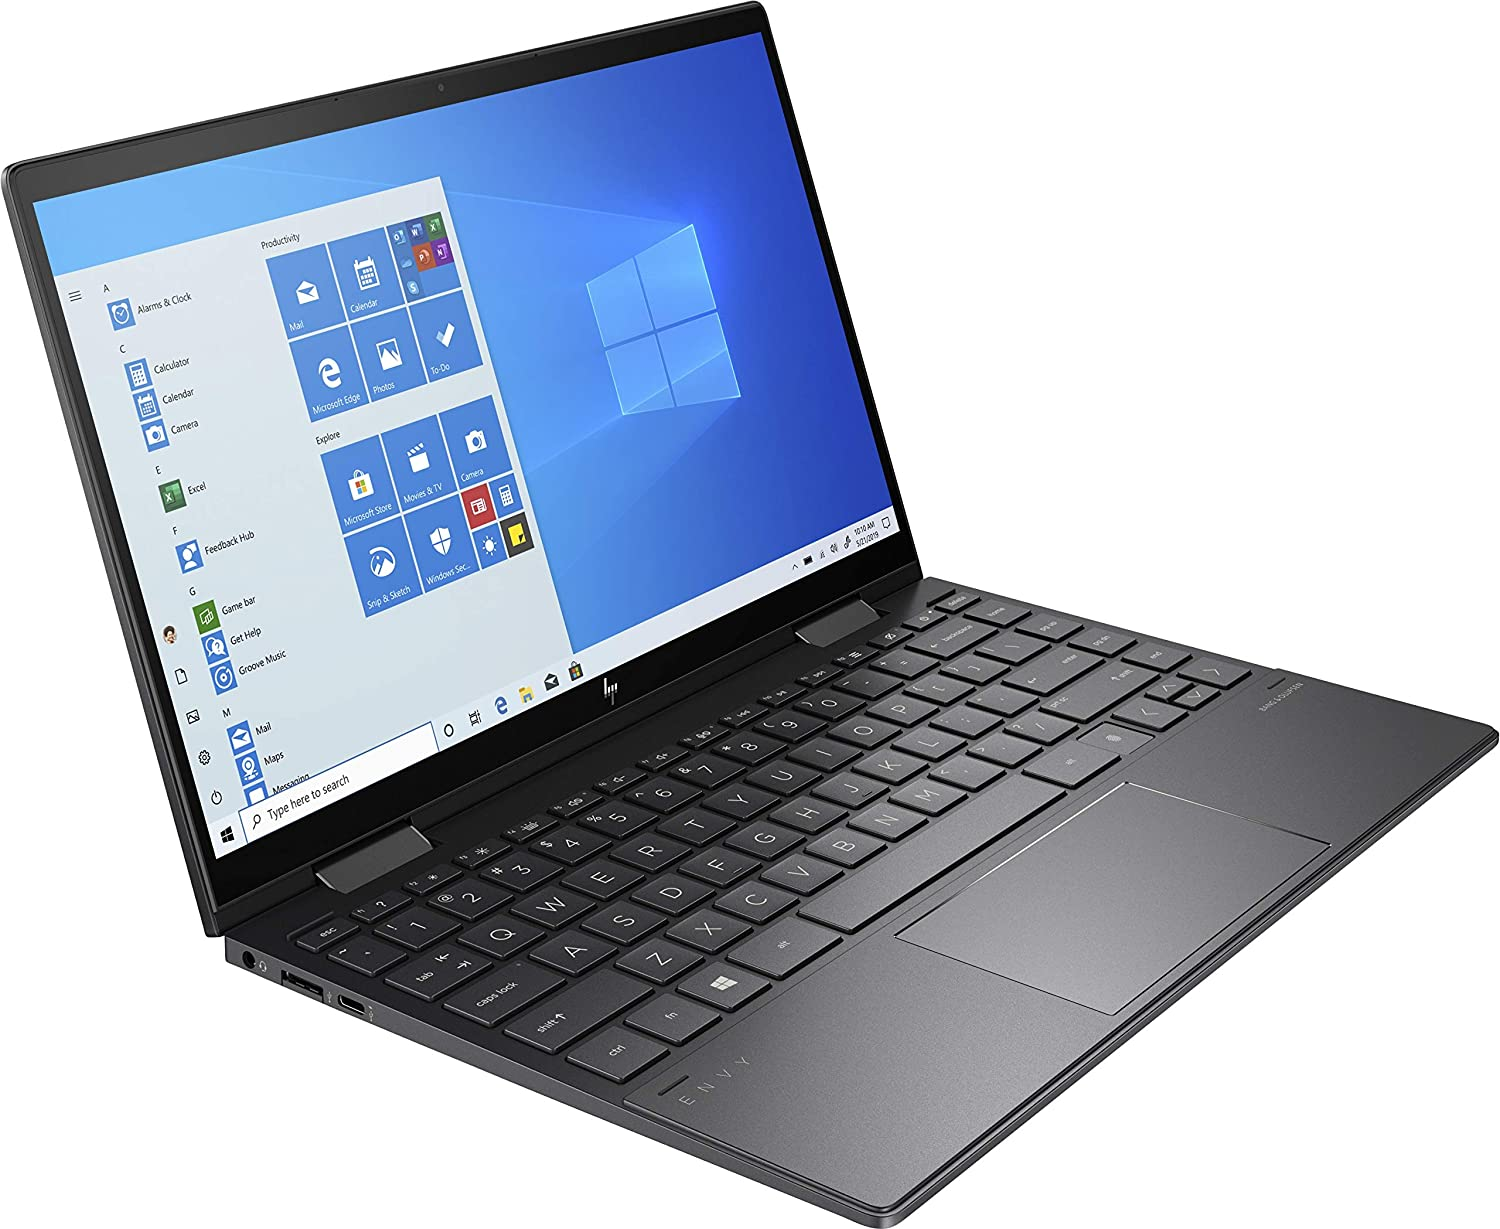 Best Laptop For Elementary School Students